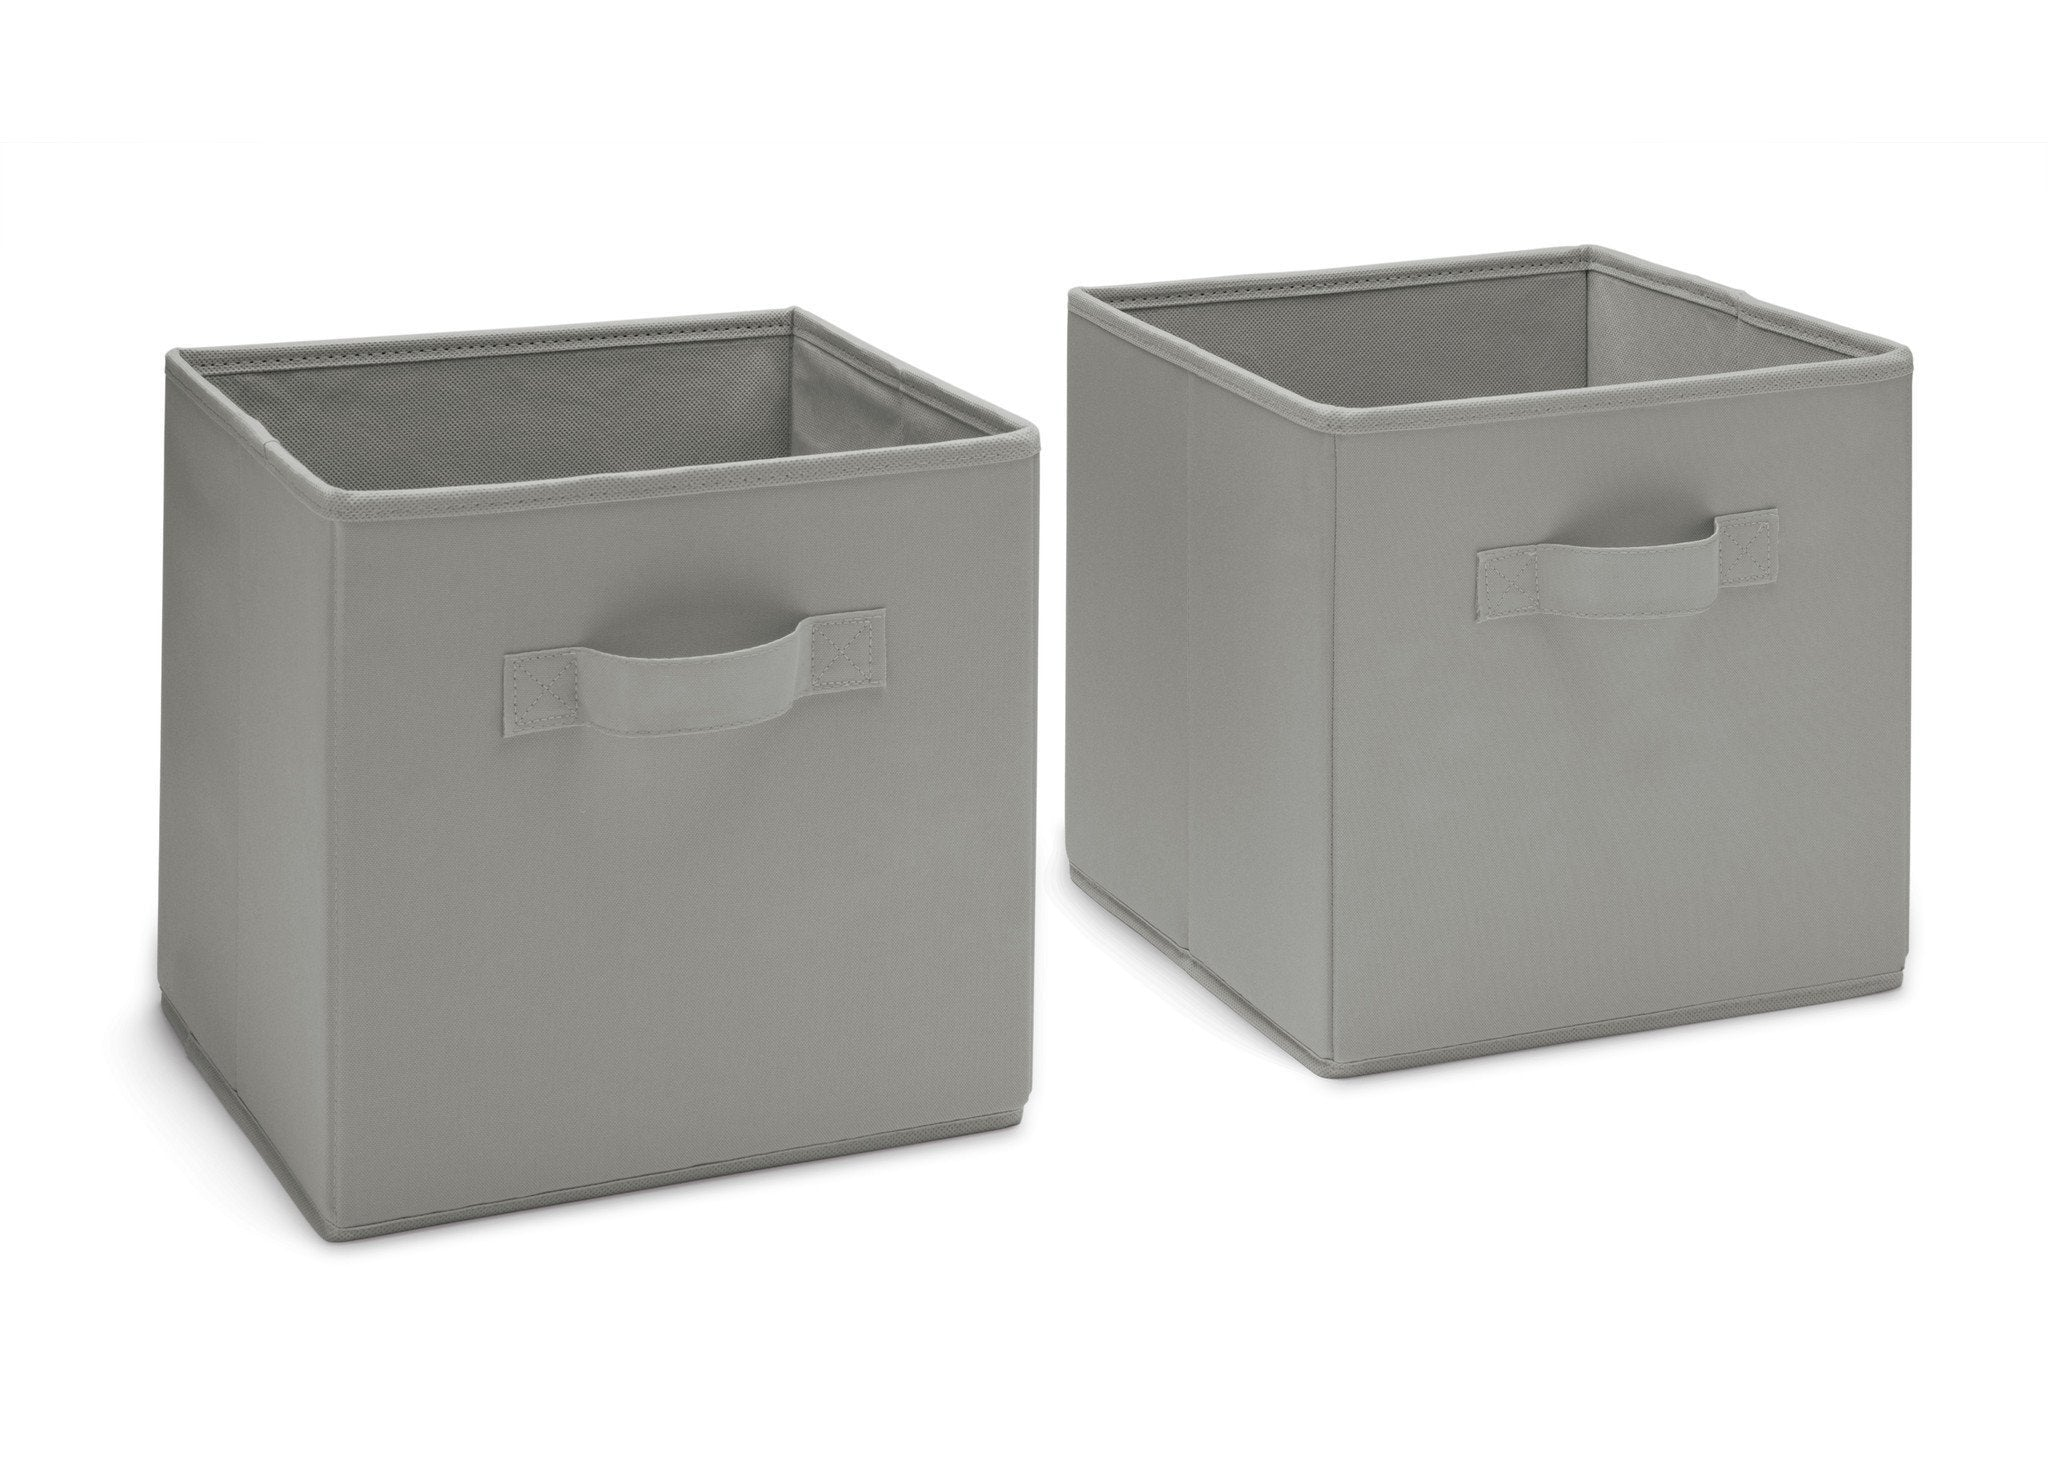 Beau Delta Children Grey (026) 2 Storage Cubes A2a ...